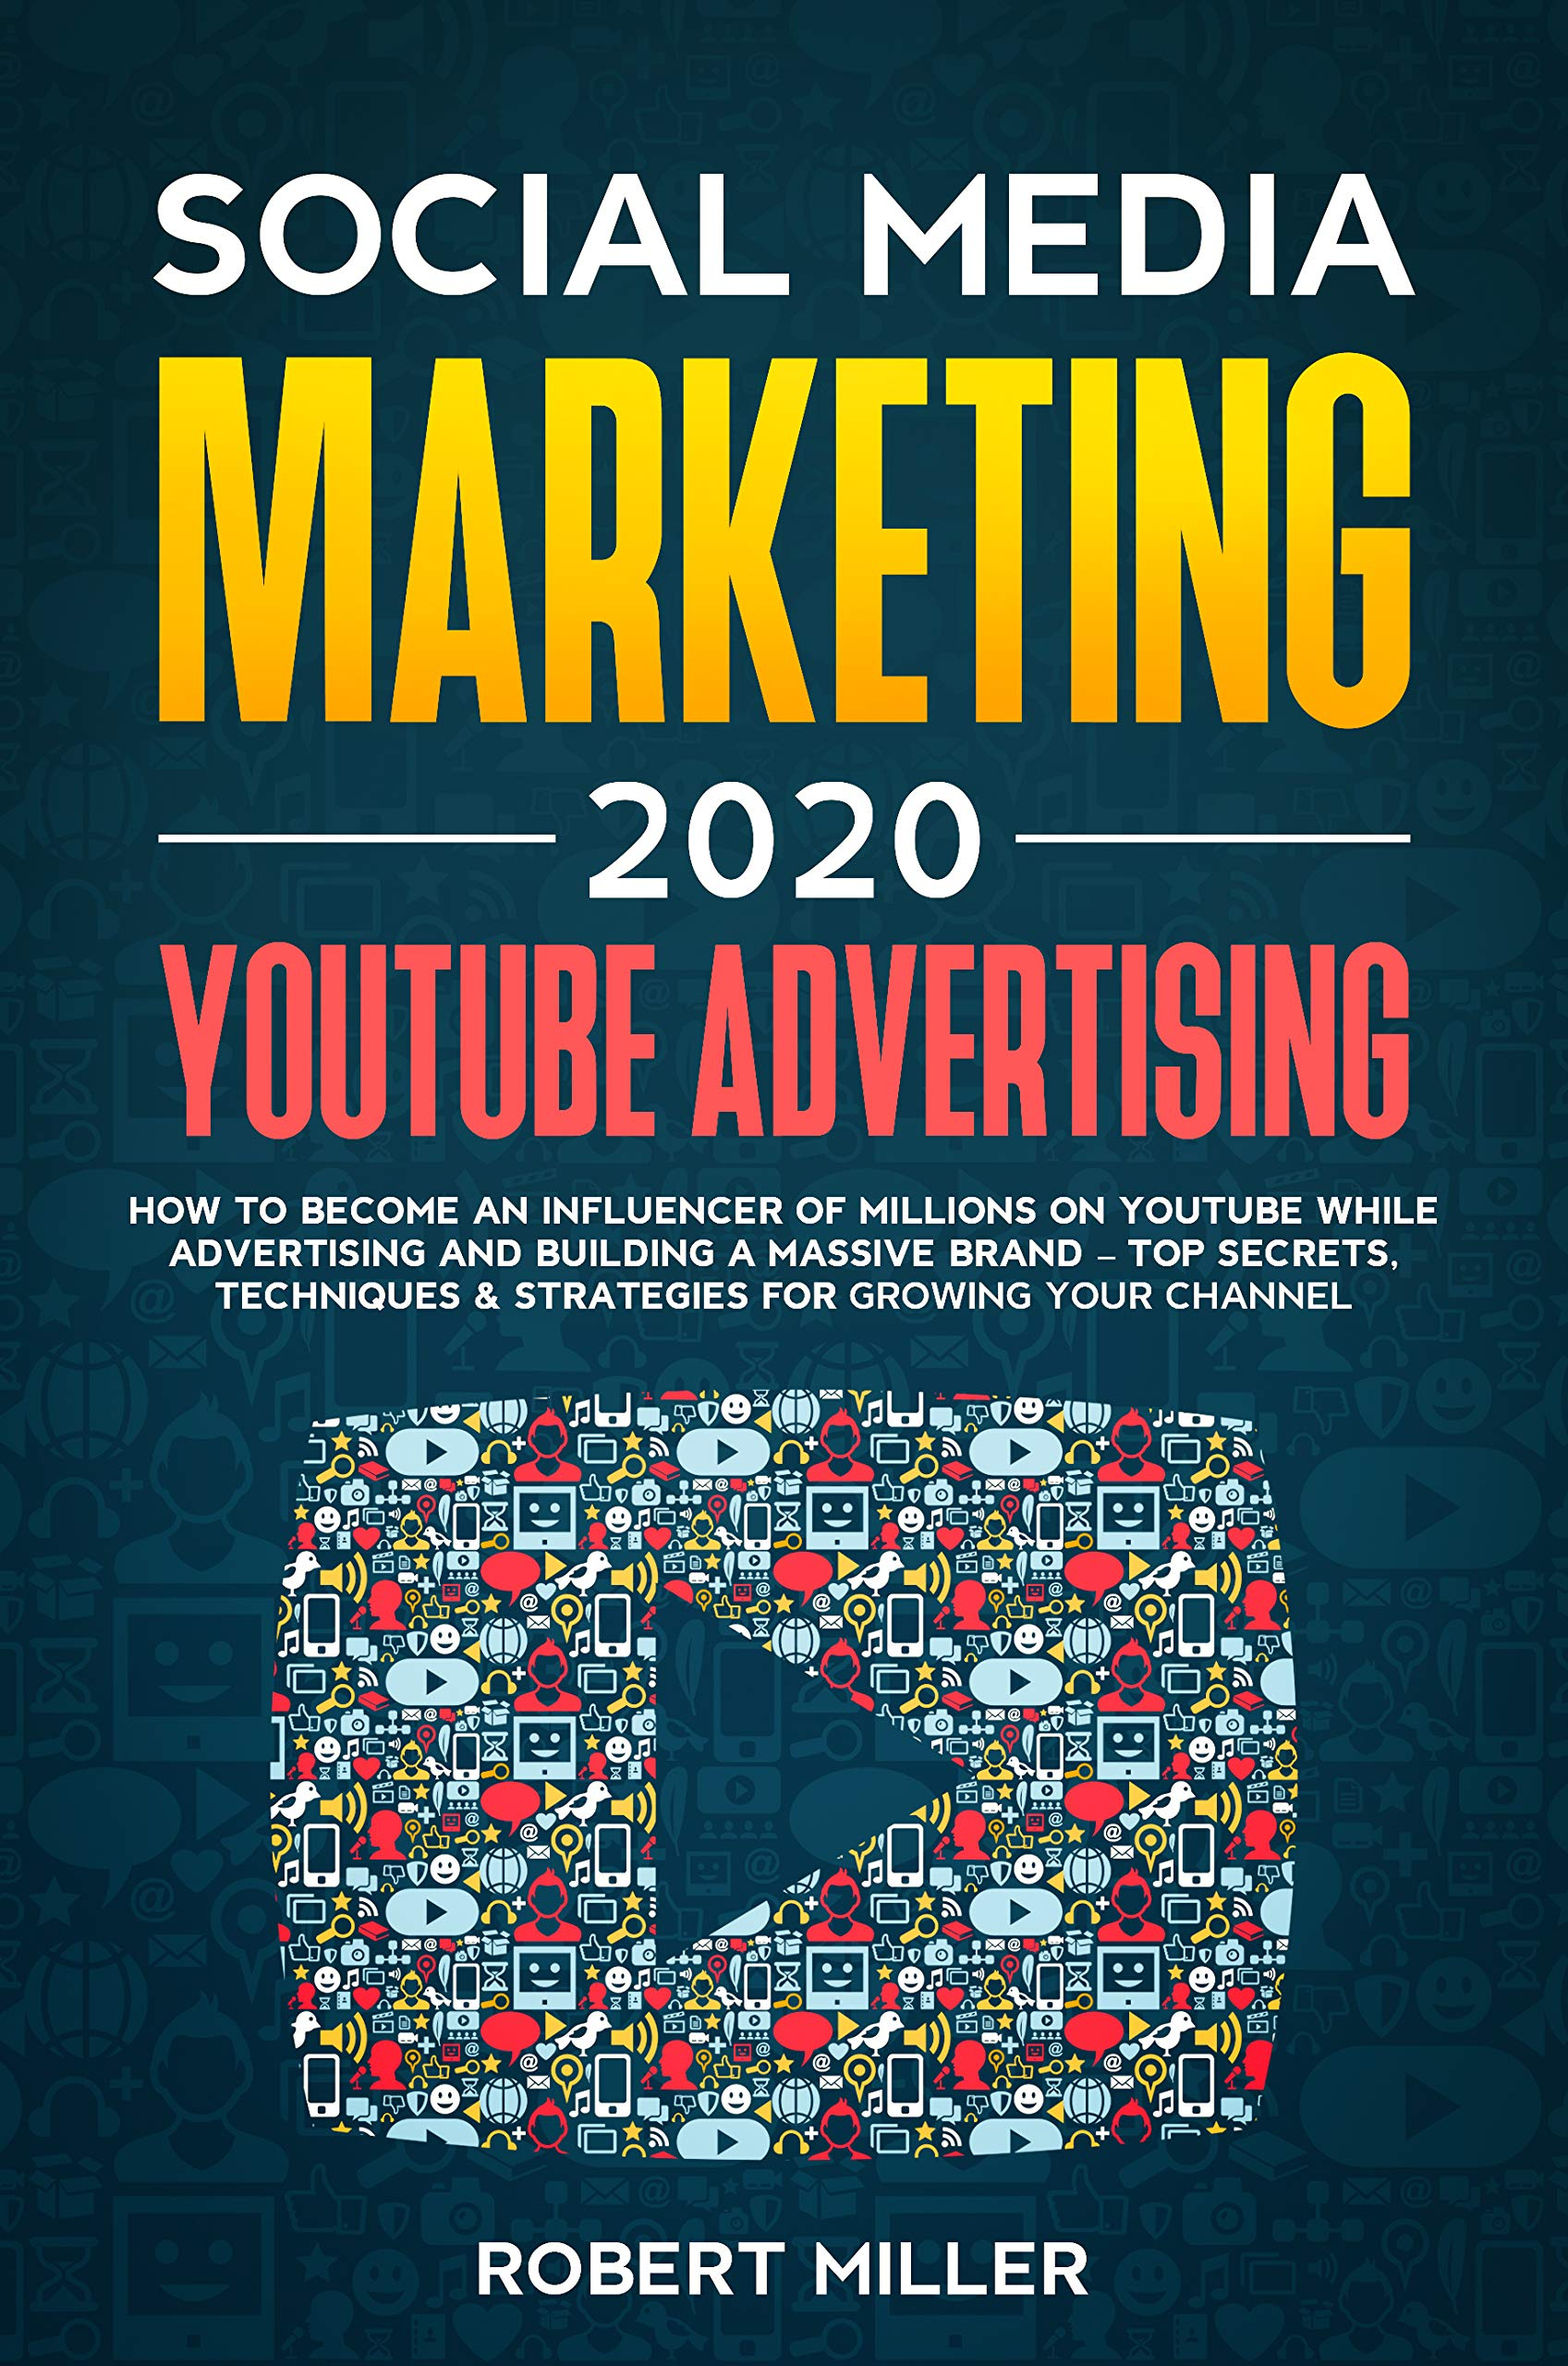 Social Media Marketing 2020: YouTube Advertising: How to Become an Influencer of Millions While Advertising & Building a Business Brand-Top Secrets, Techniques & Strategies for Growing Your Channel